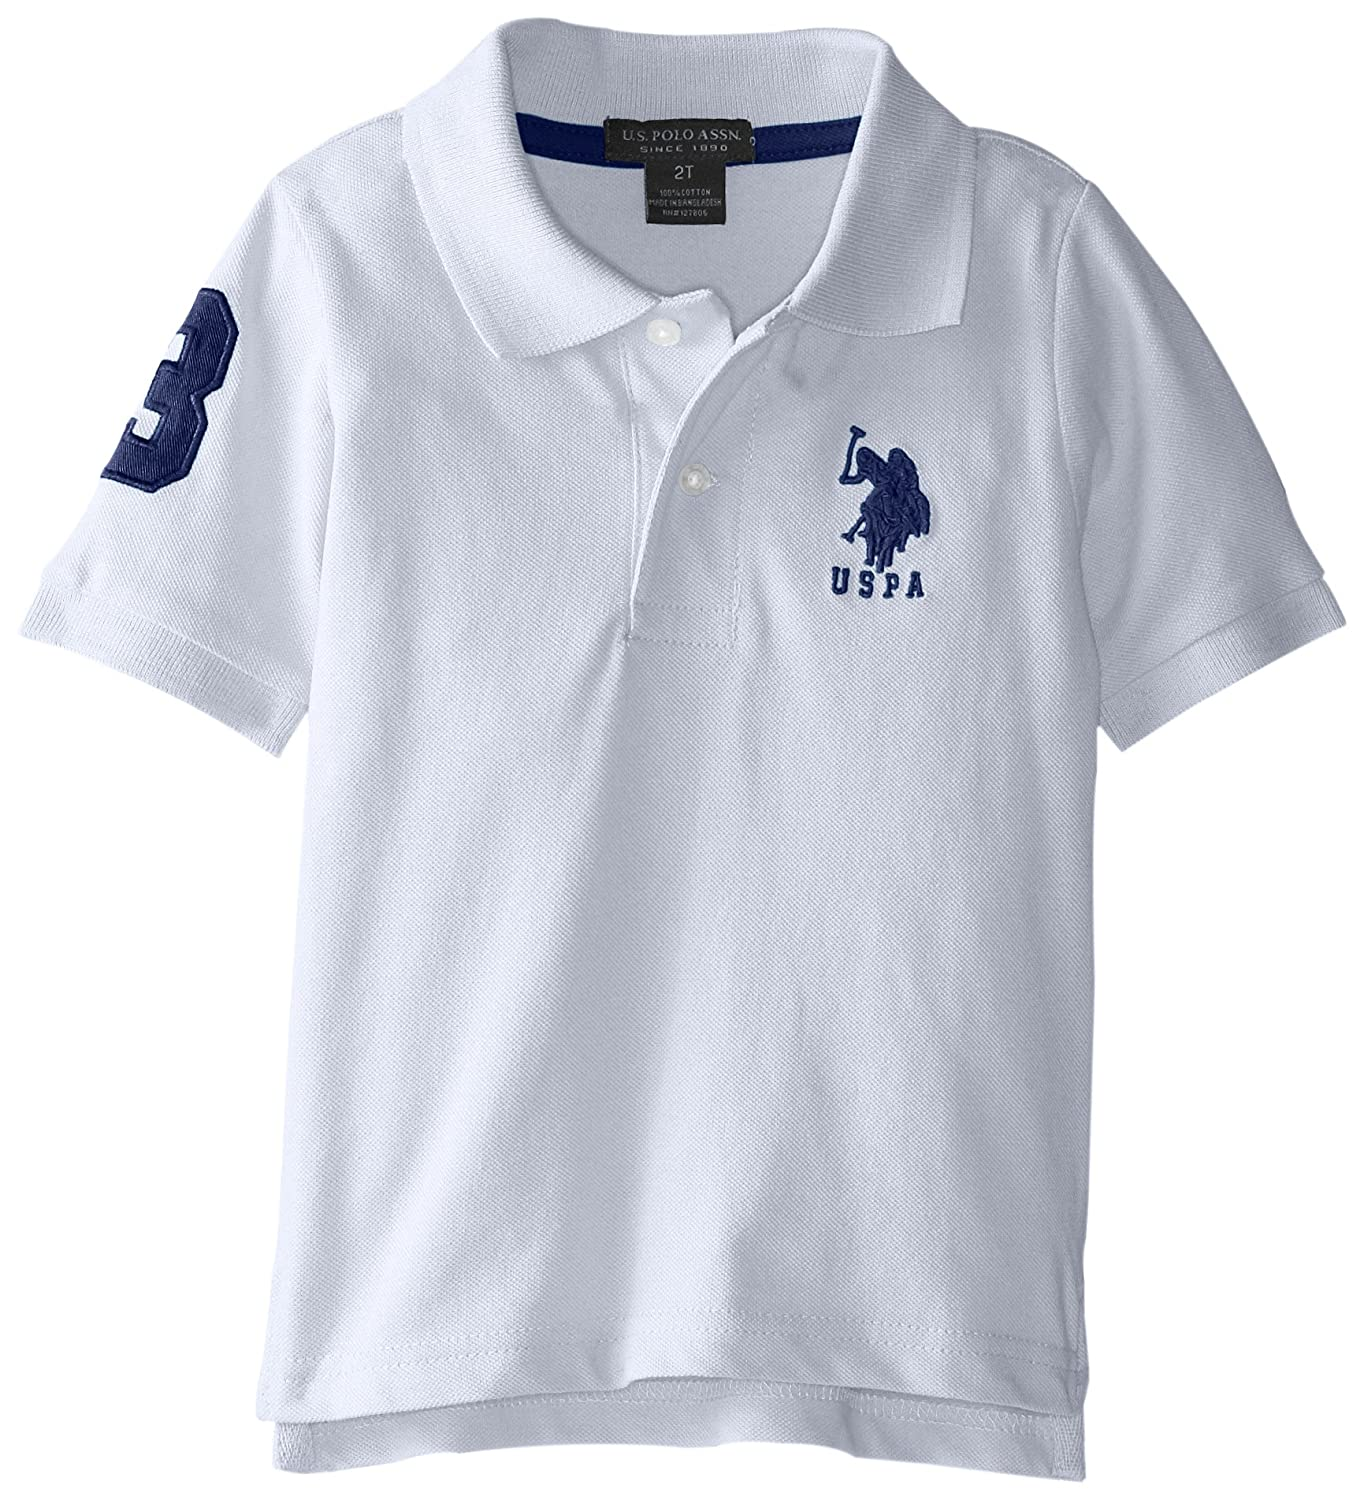 Amazon us polo assn boys solid short sleeve polo shirt amazon us polo assn boys solid short sleeve polo shirt clothing geenschuldenfo Image collections